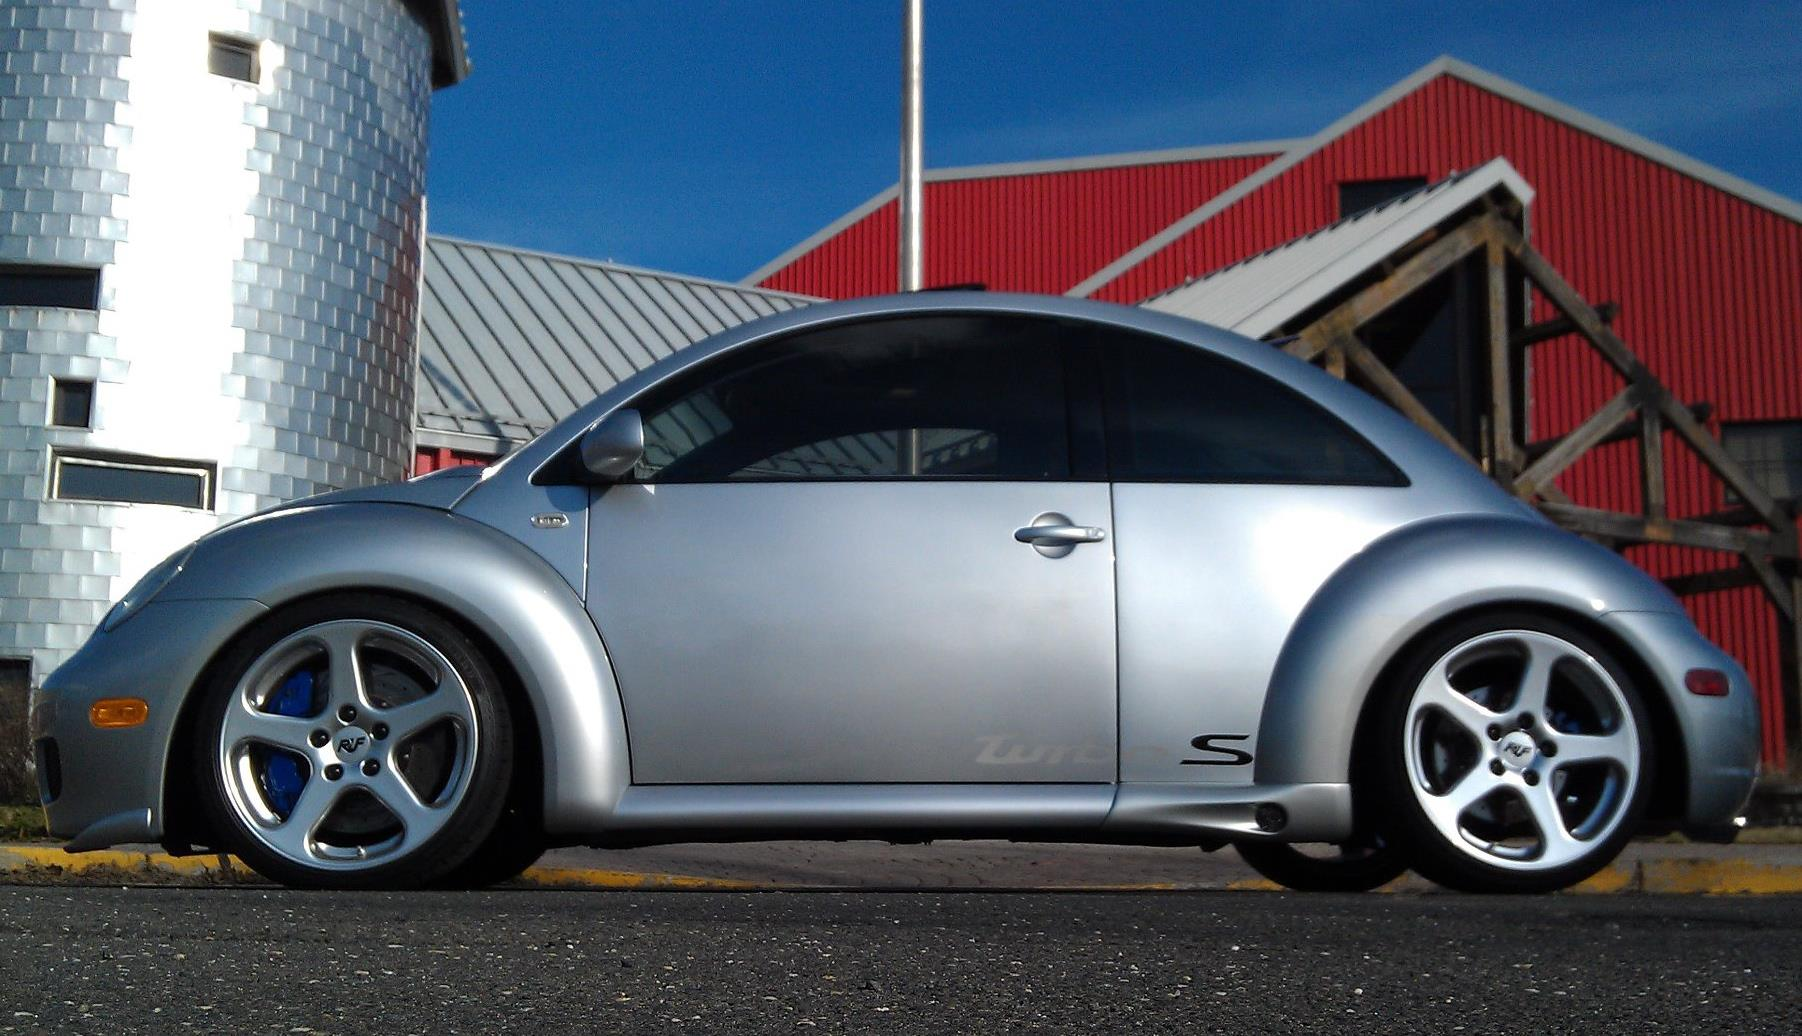 2002 volkswagen beetle ruf bug turbo s one of a kind. Black Bedroom Furniture Sets. Home Design Ideas